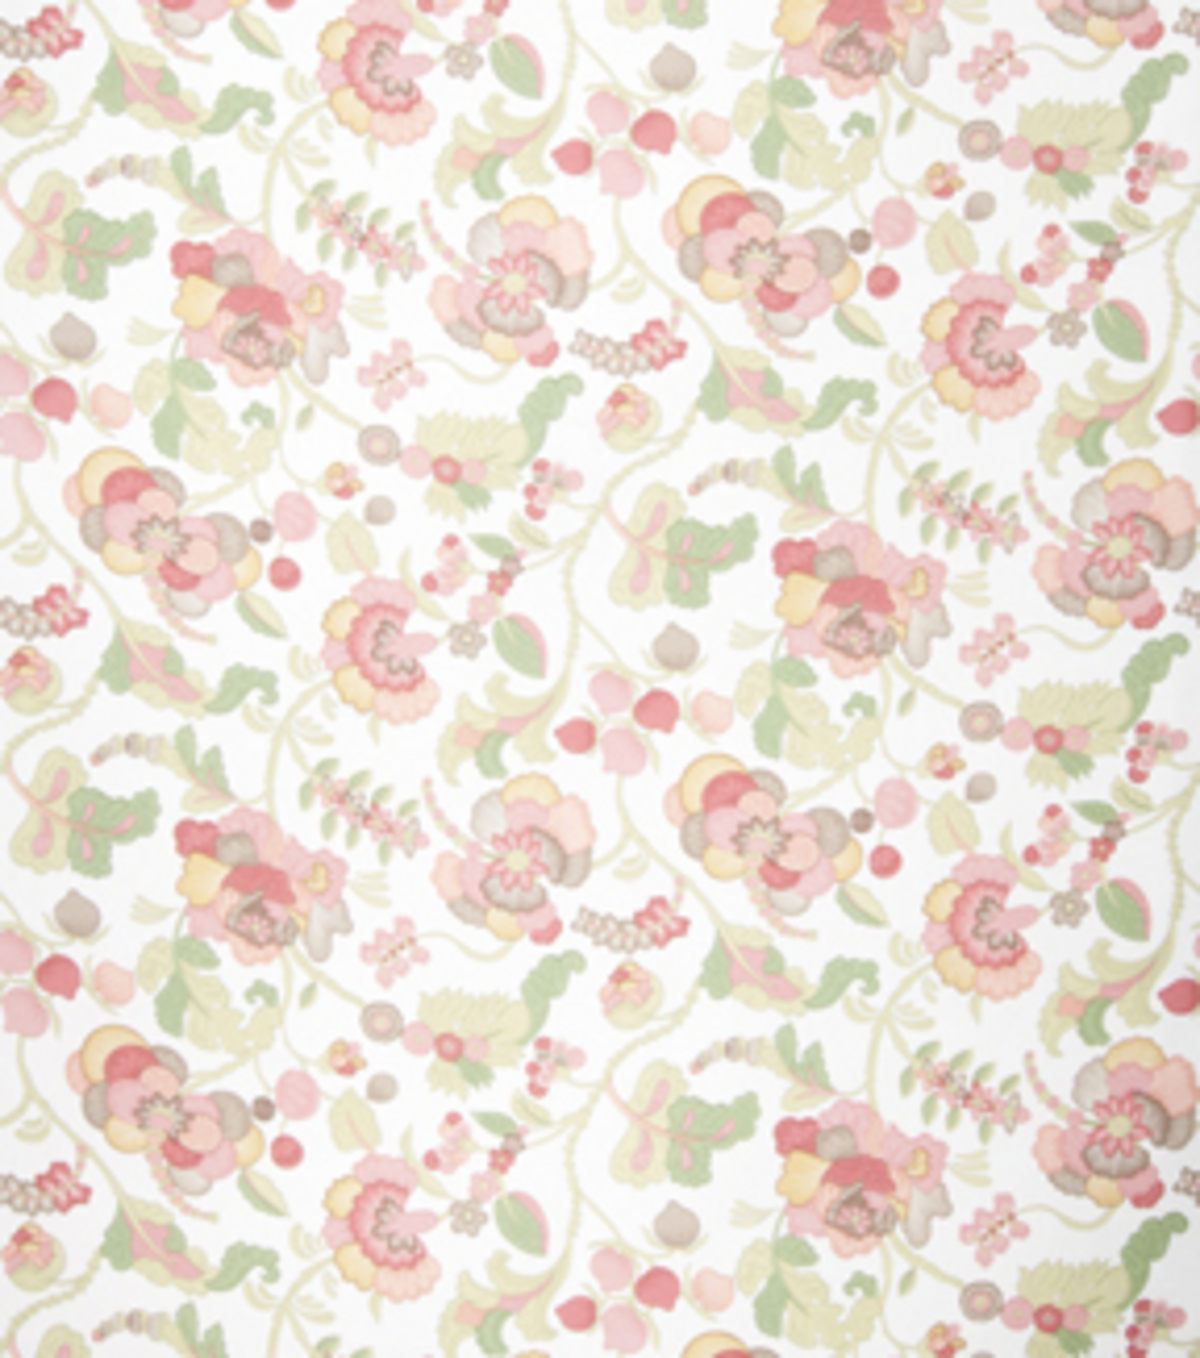 Home Decor 8\u0022x8\u0022 Fabric Swatch-Upholstery Fabric Eaton Square Sincere Sorbet